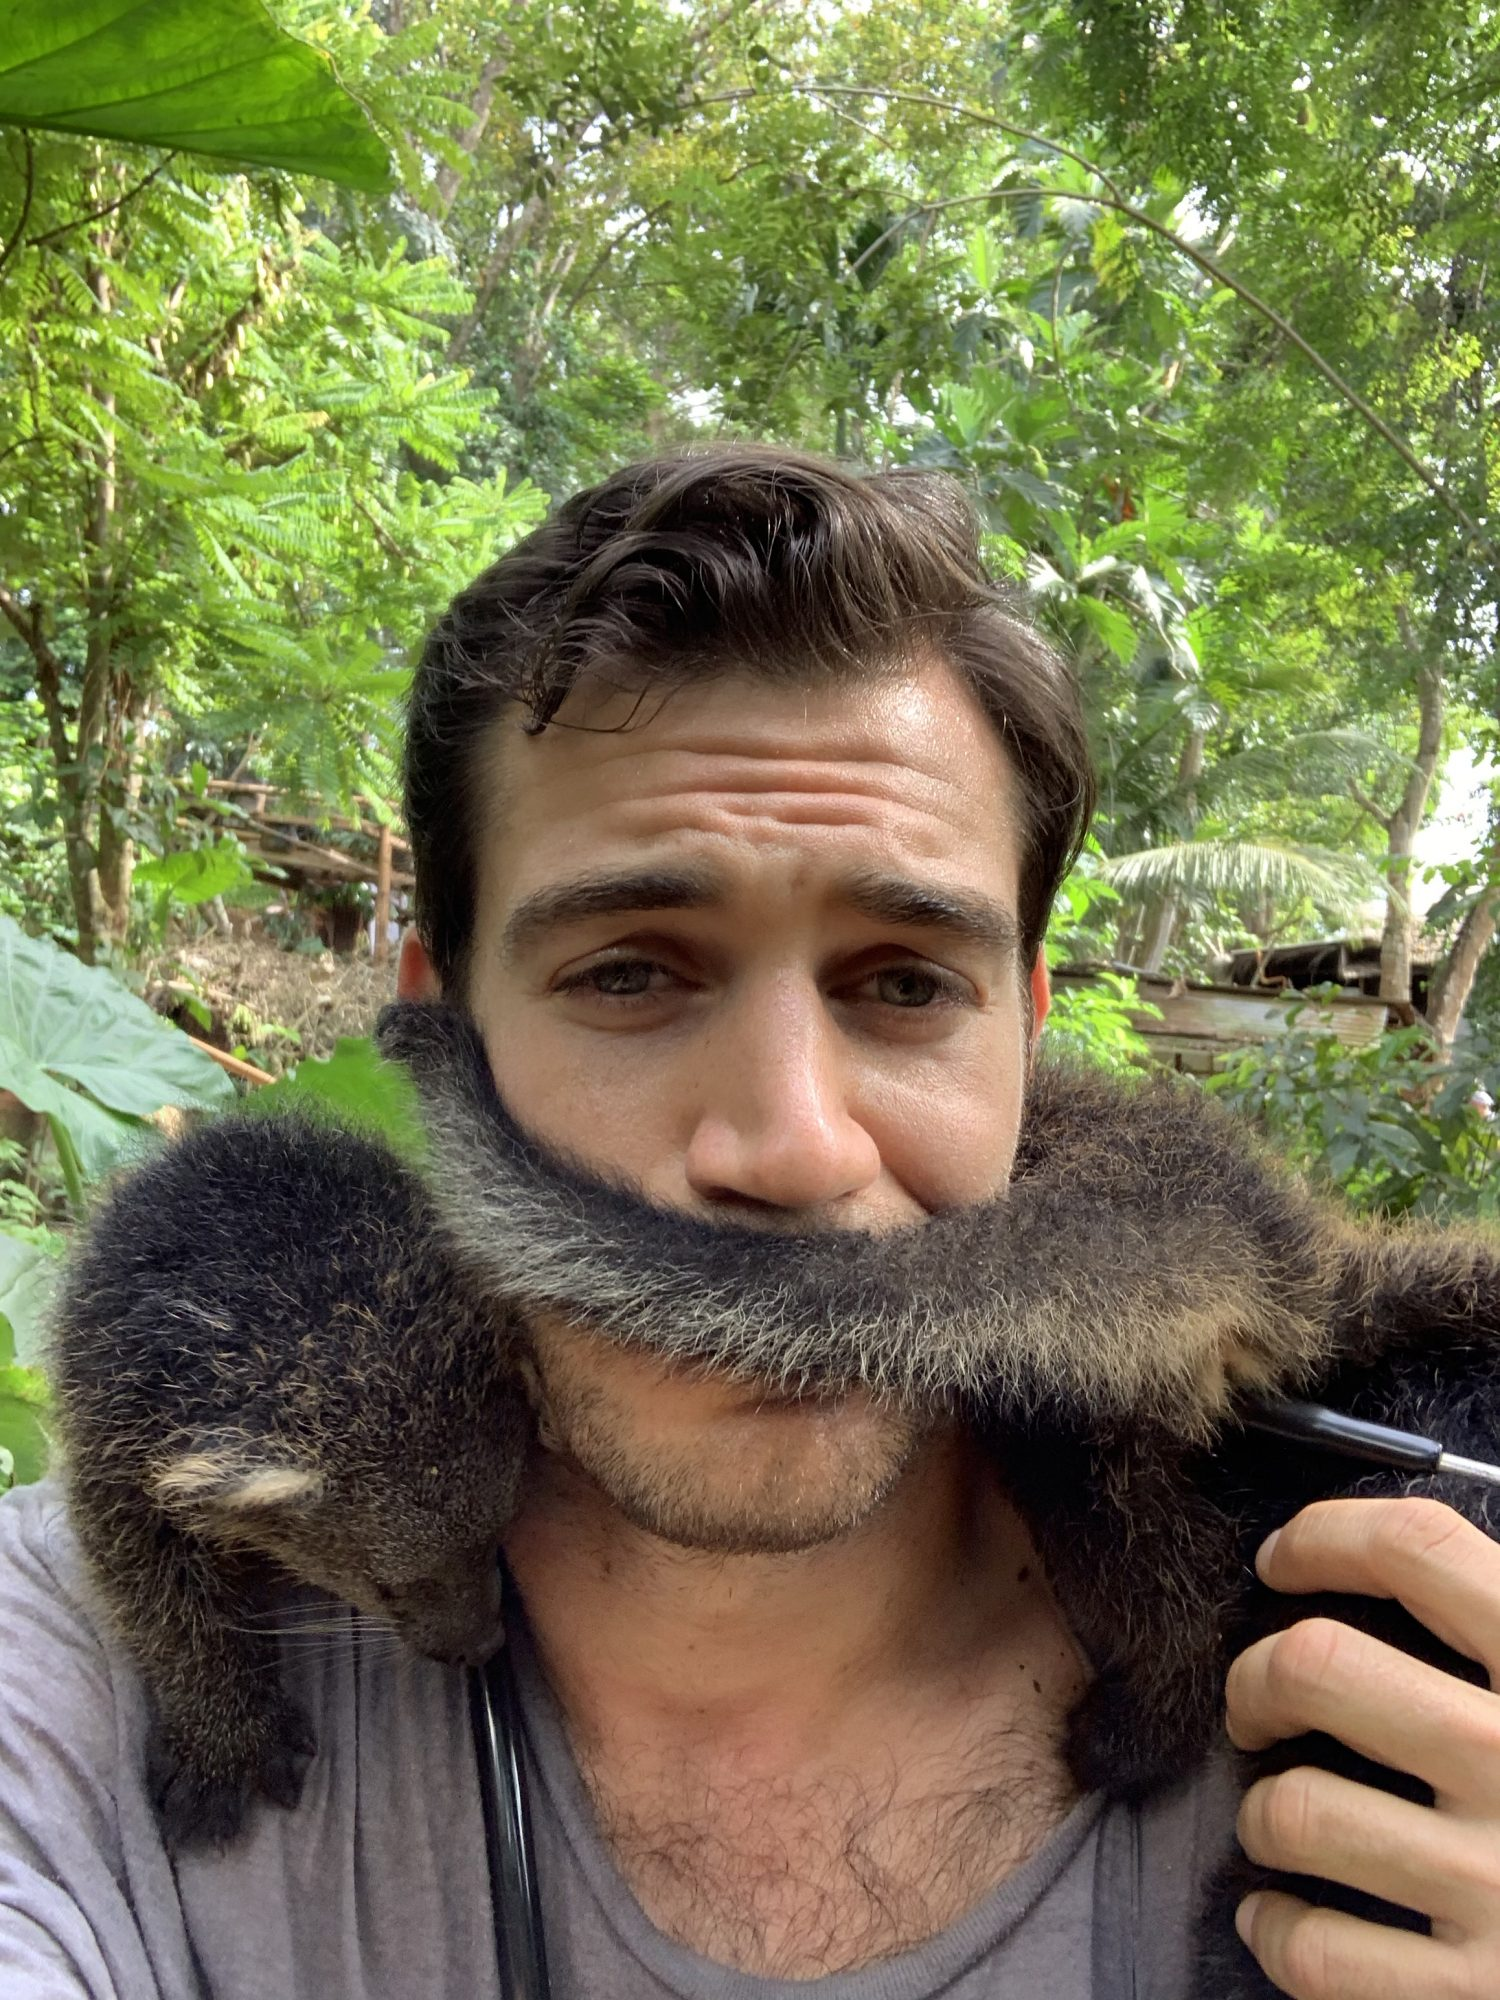 Dr. Evan Antin with bearcat tail wrapped around his face